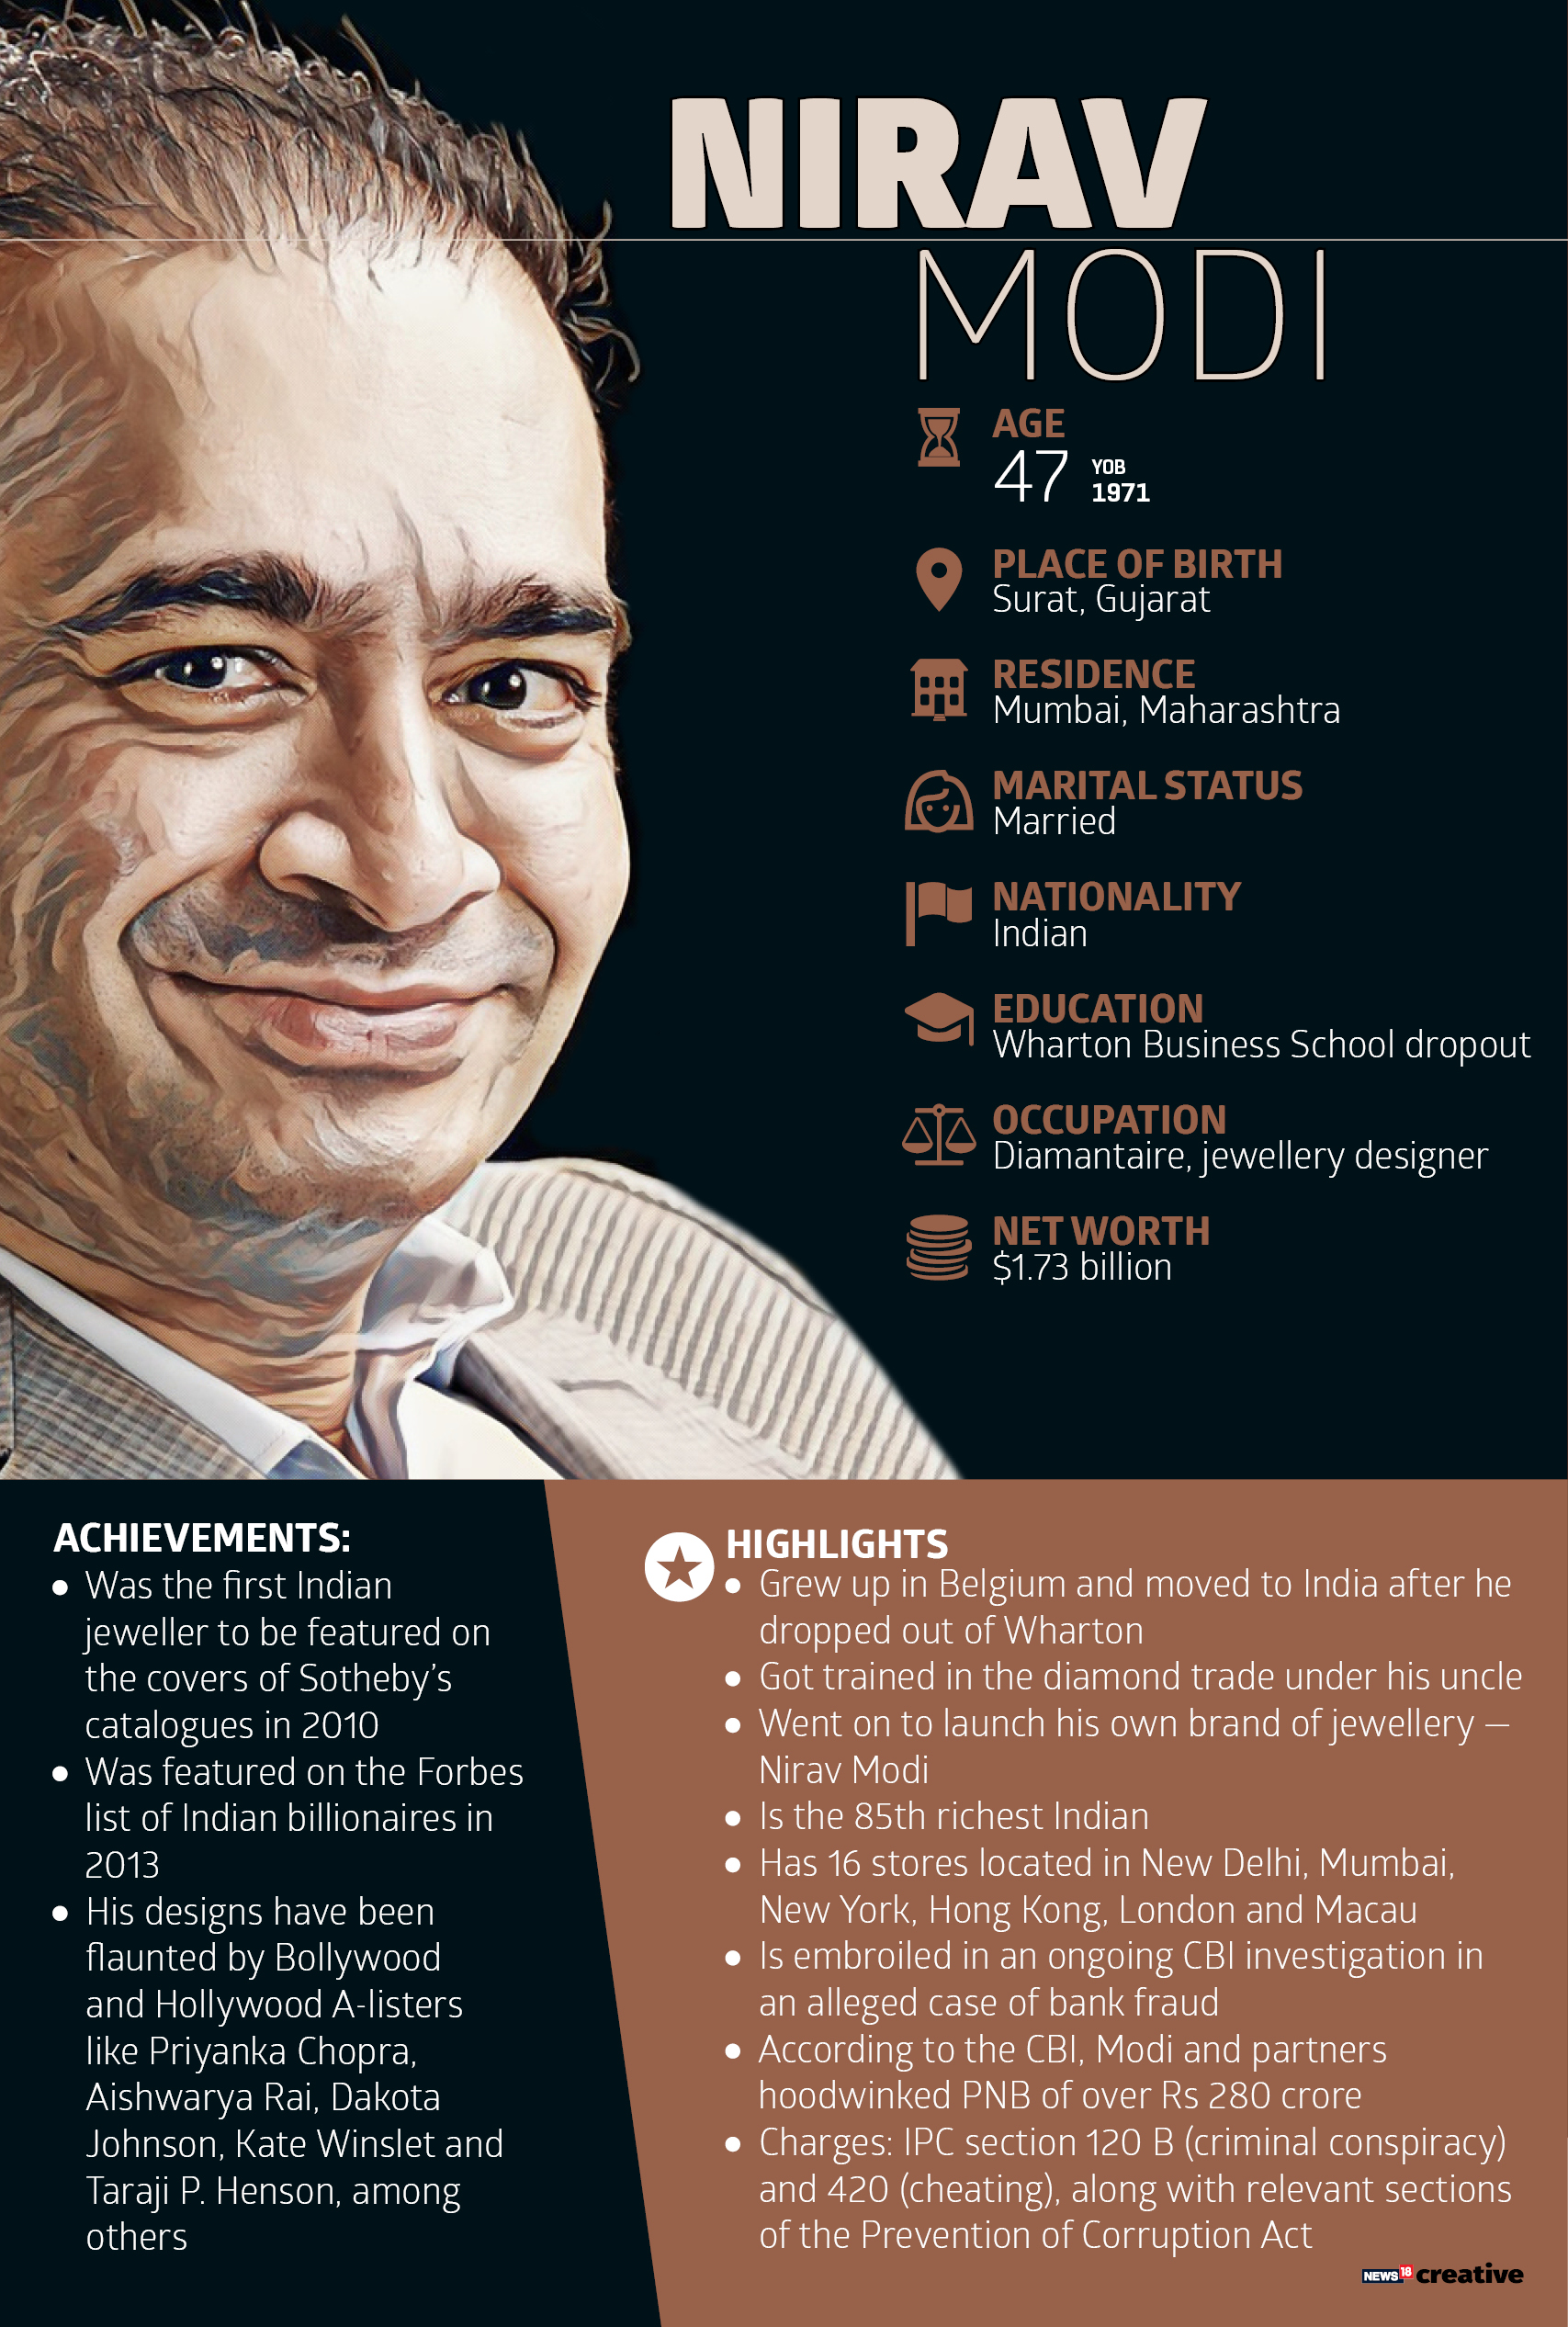 Nirav Modi: His diamonds wooed women globally, making him a billionaire